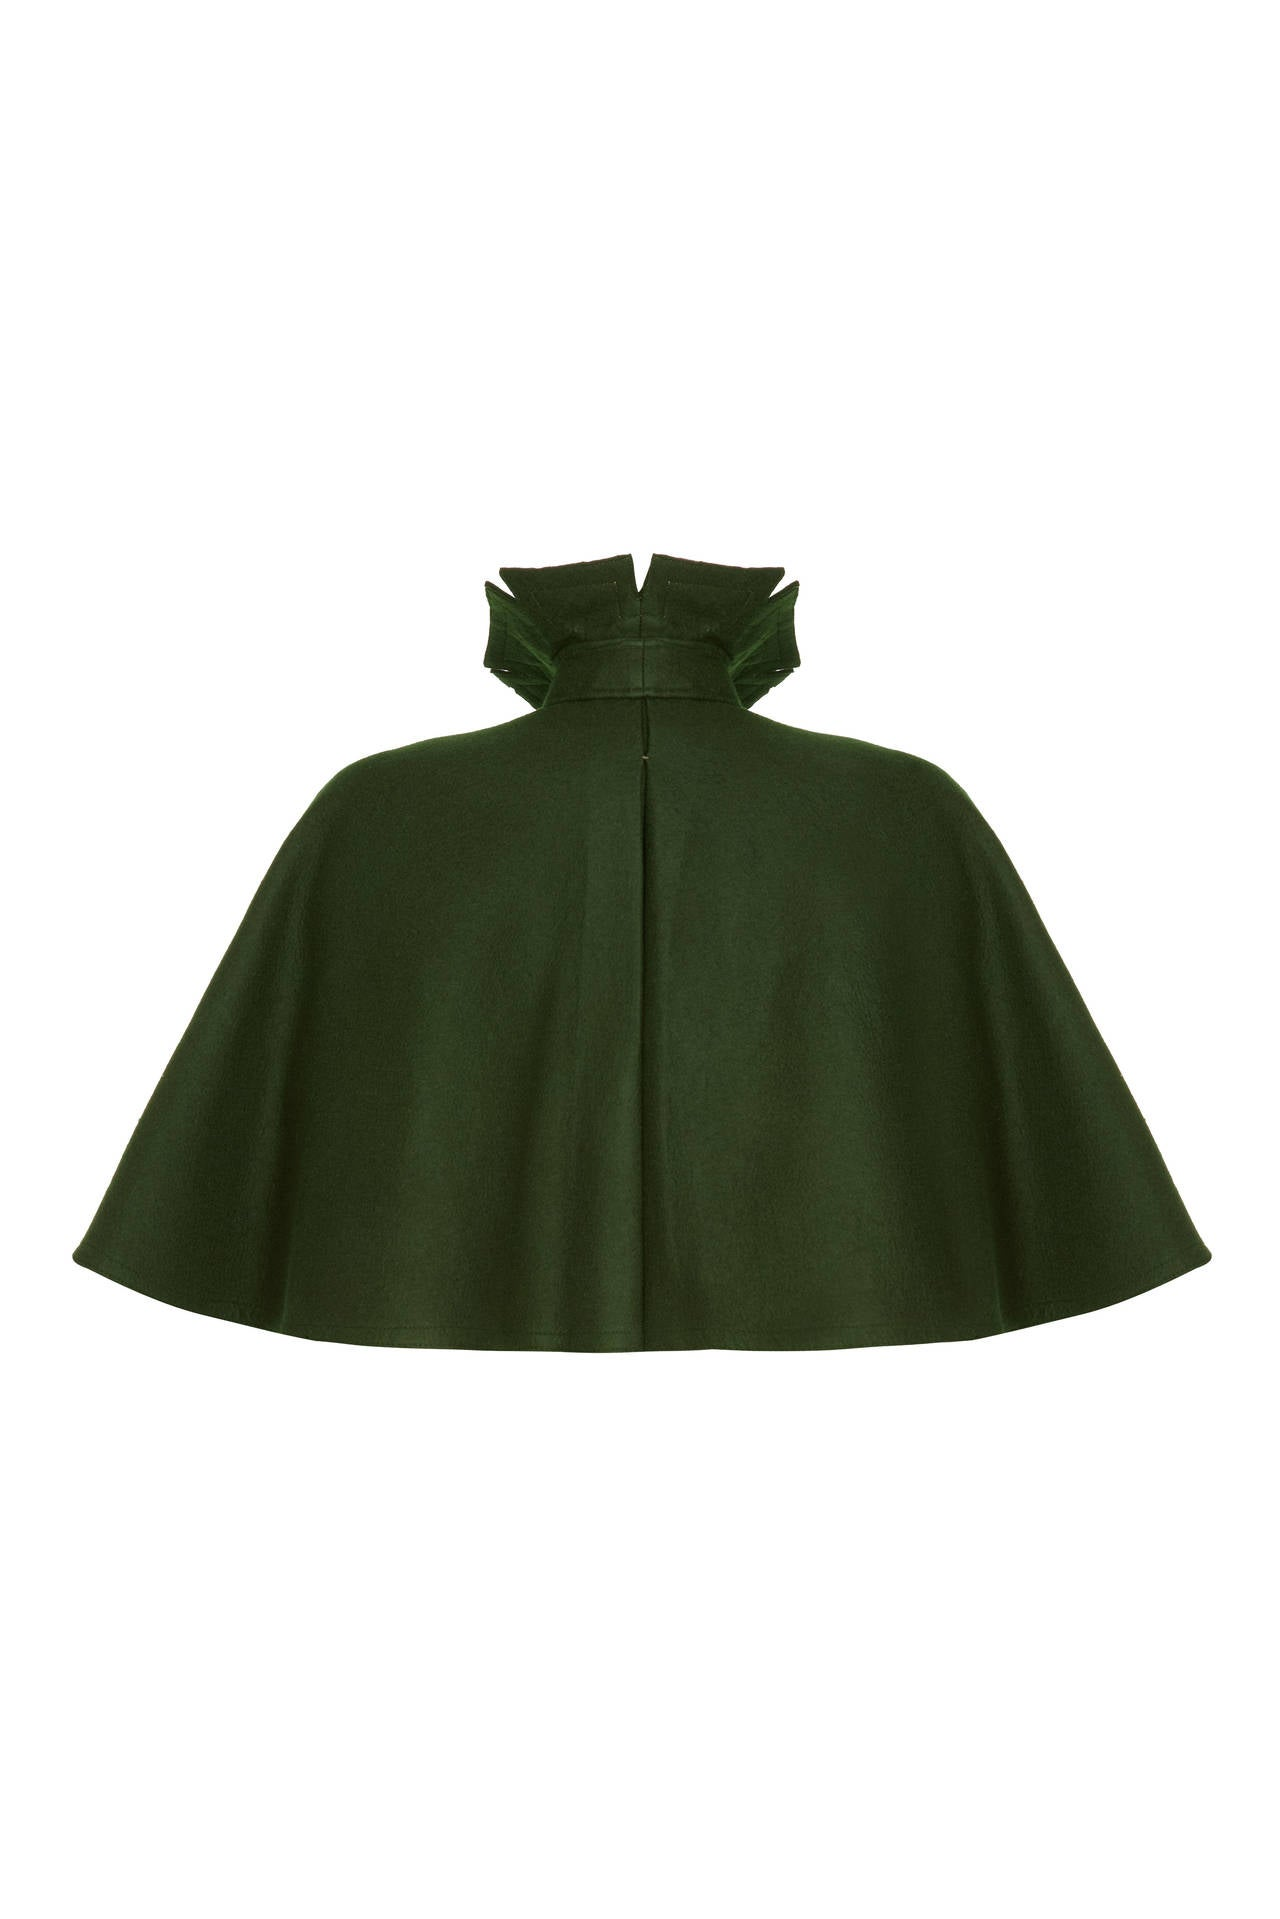 Victorian Green Felt Wool Cape 2